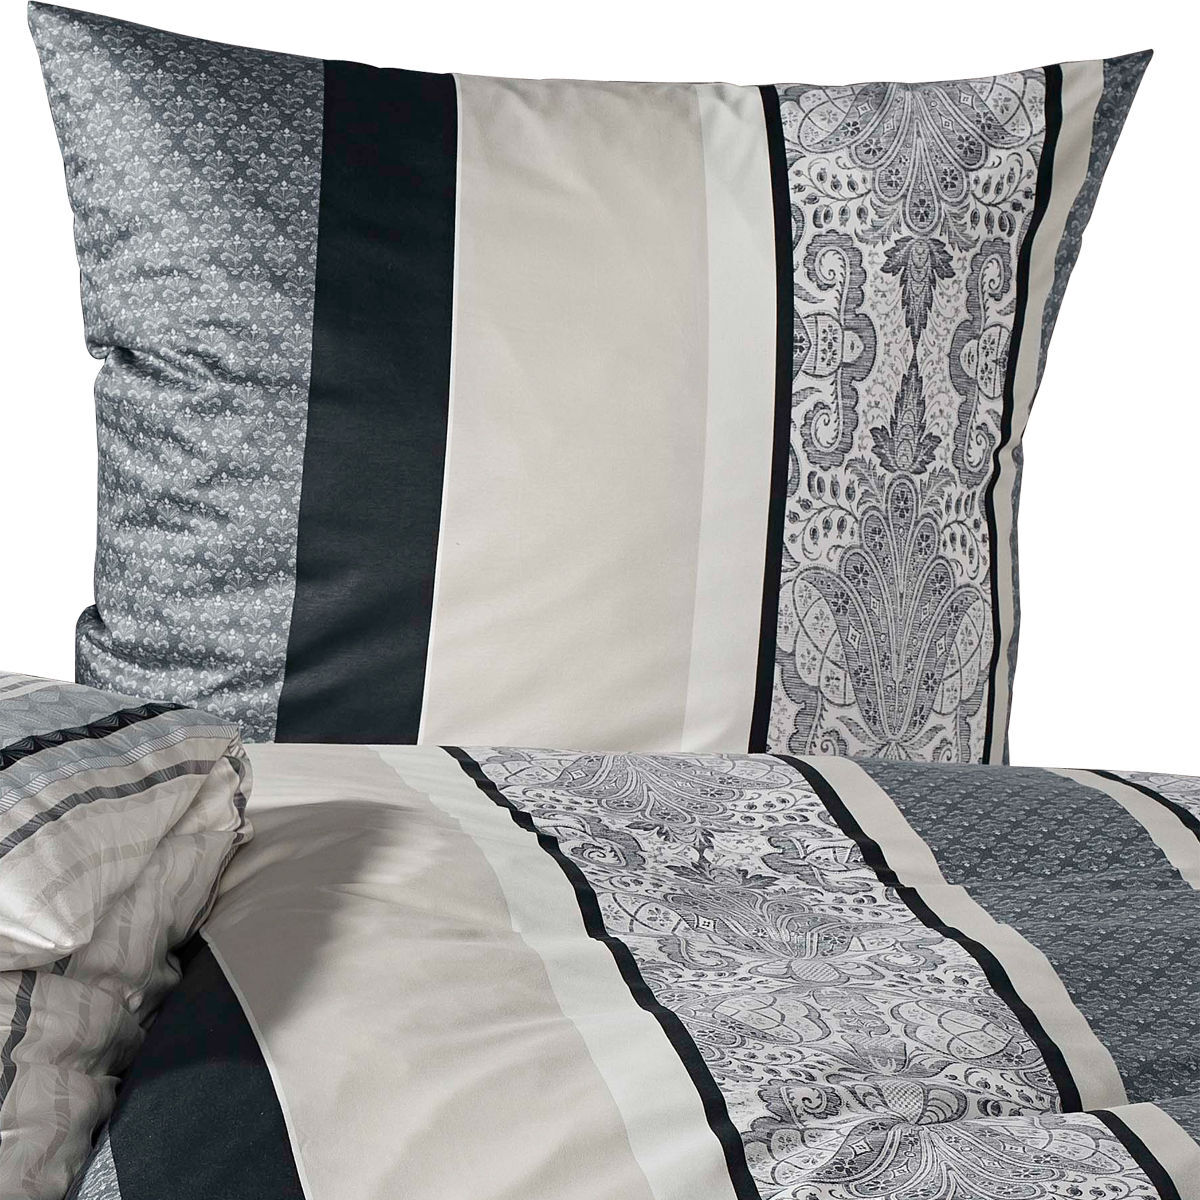 estella jersey bettw sche galen karstadt online shop. Black Bedroom Furniture Sets. Home Design Ideas